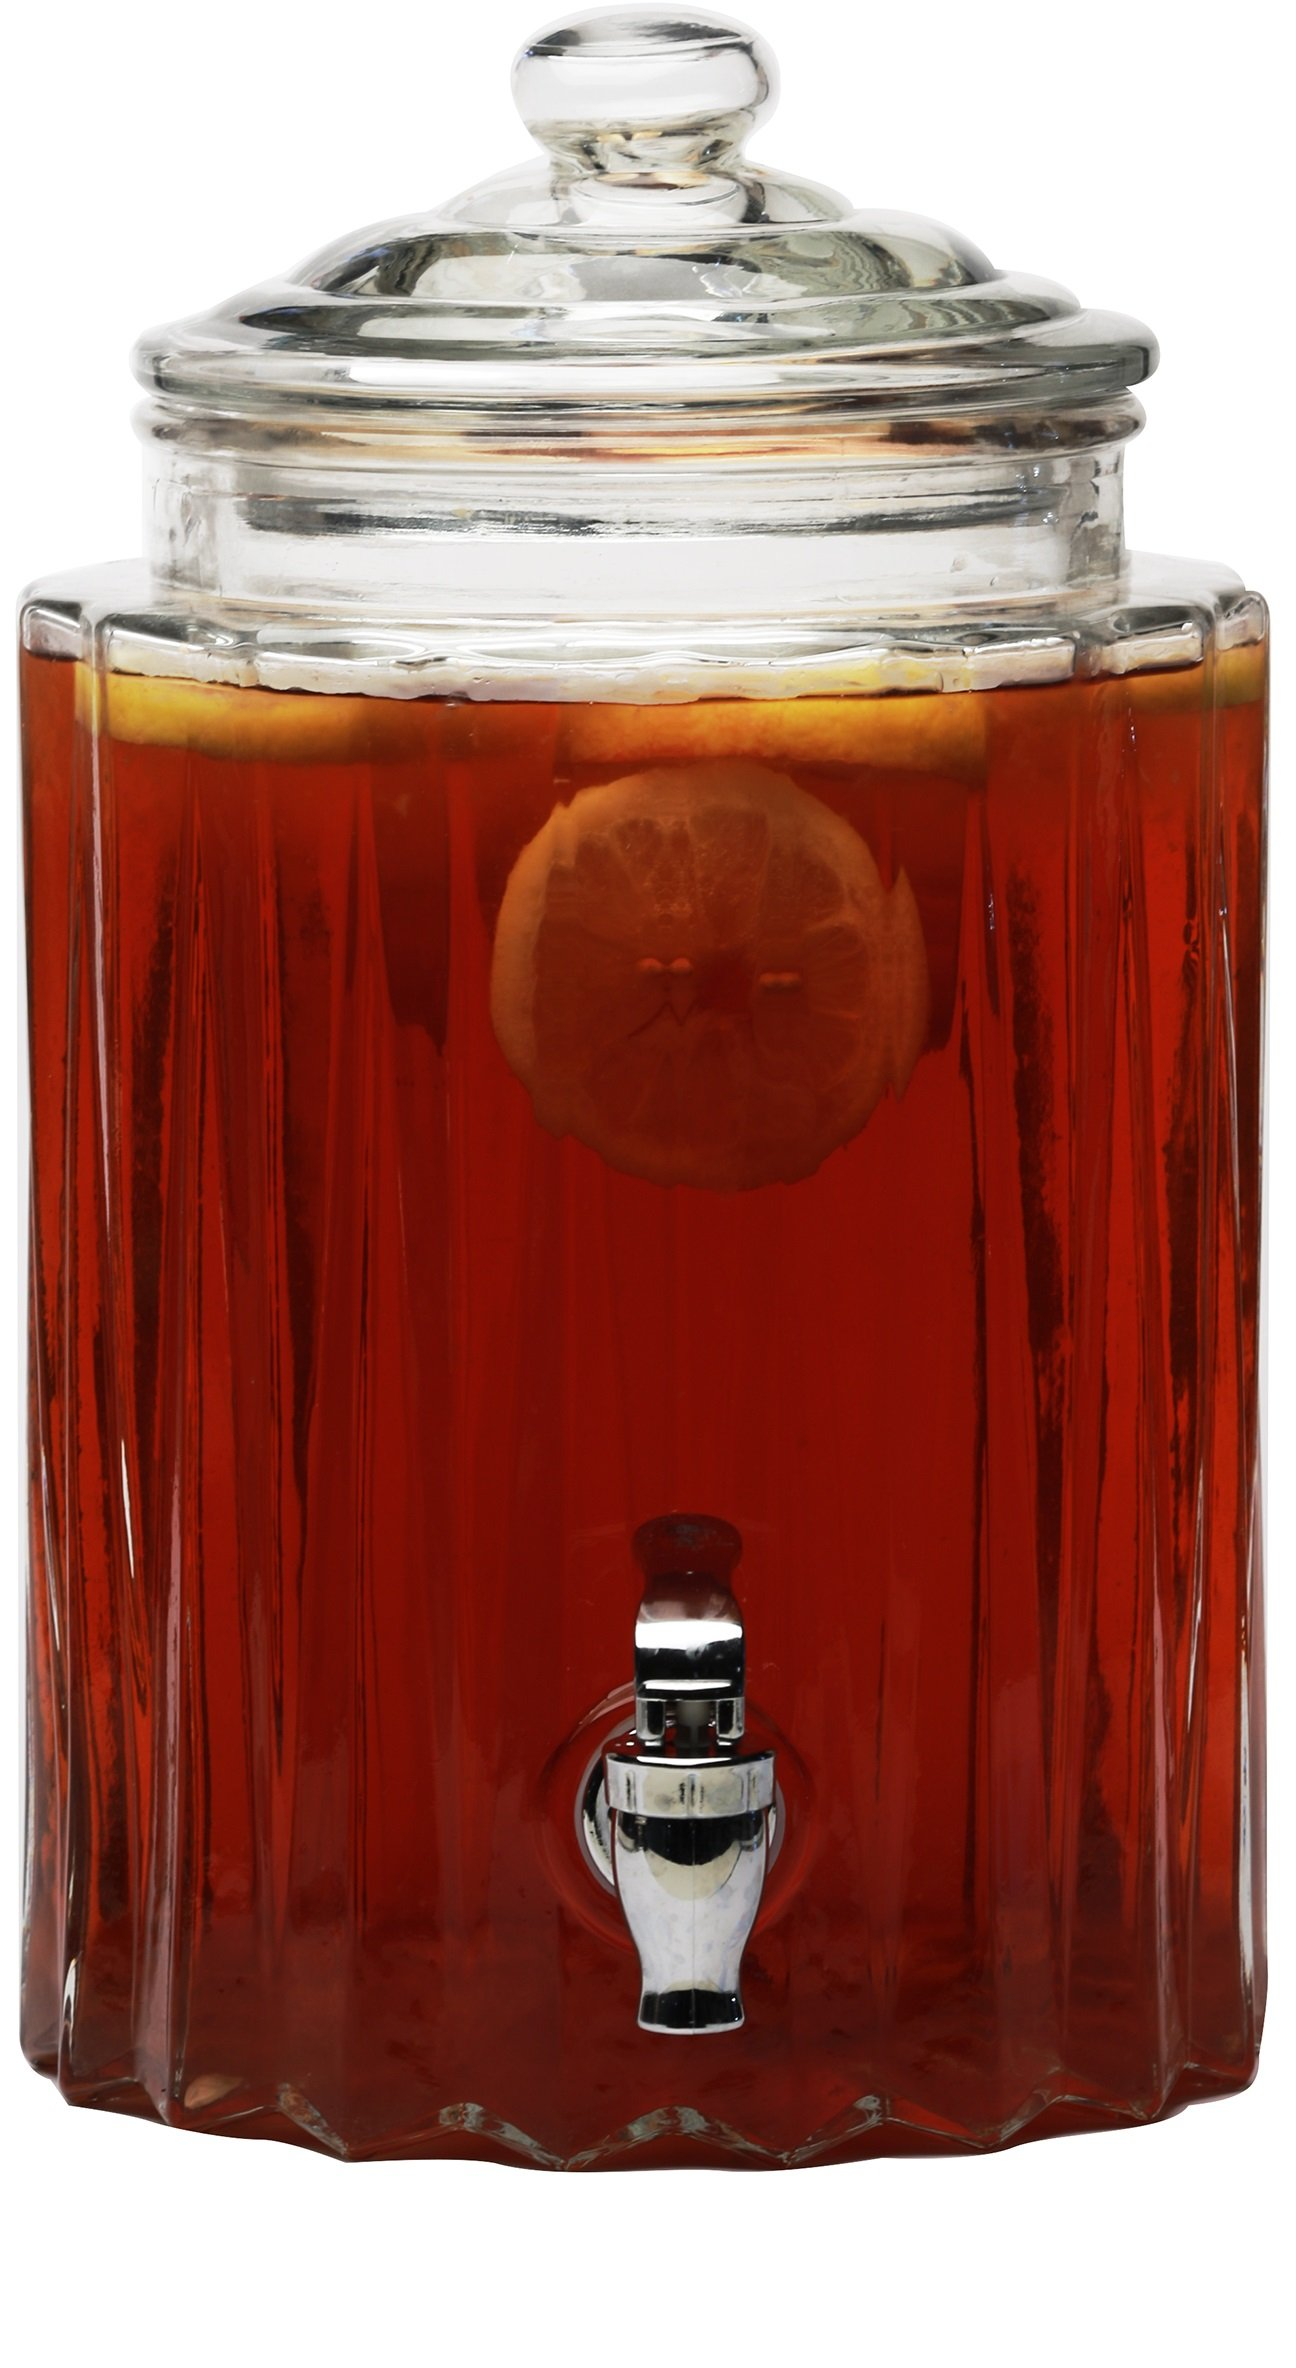 Circleware 69162 Elever Beverage Drink Dispenser with Glass Lid Glassware for Water, Iced Tea Kombucha, Punch and All Type of Cold, 1.4 Gallons